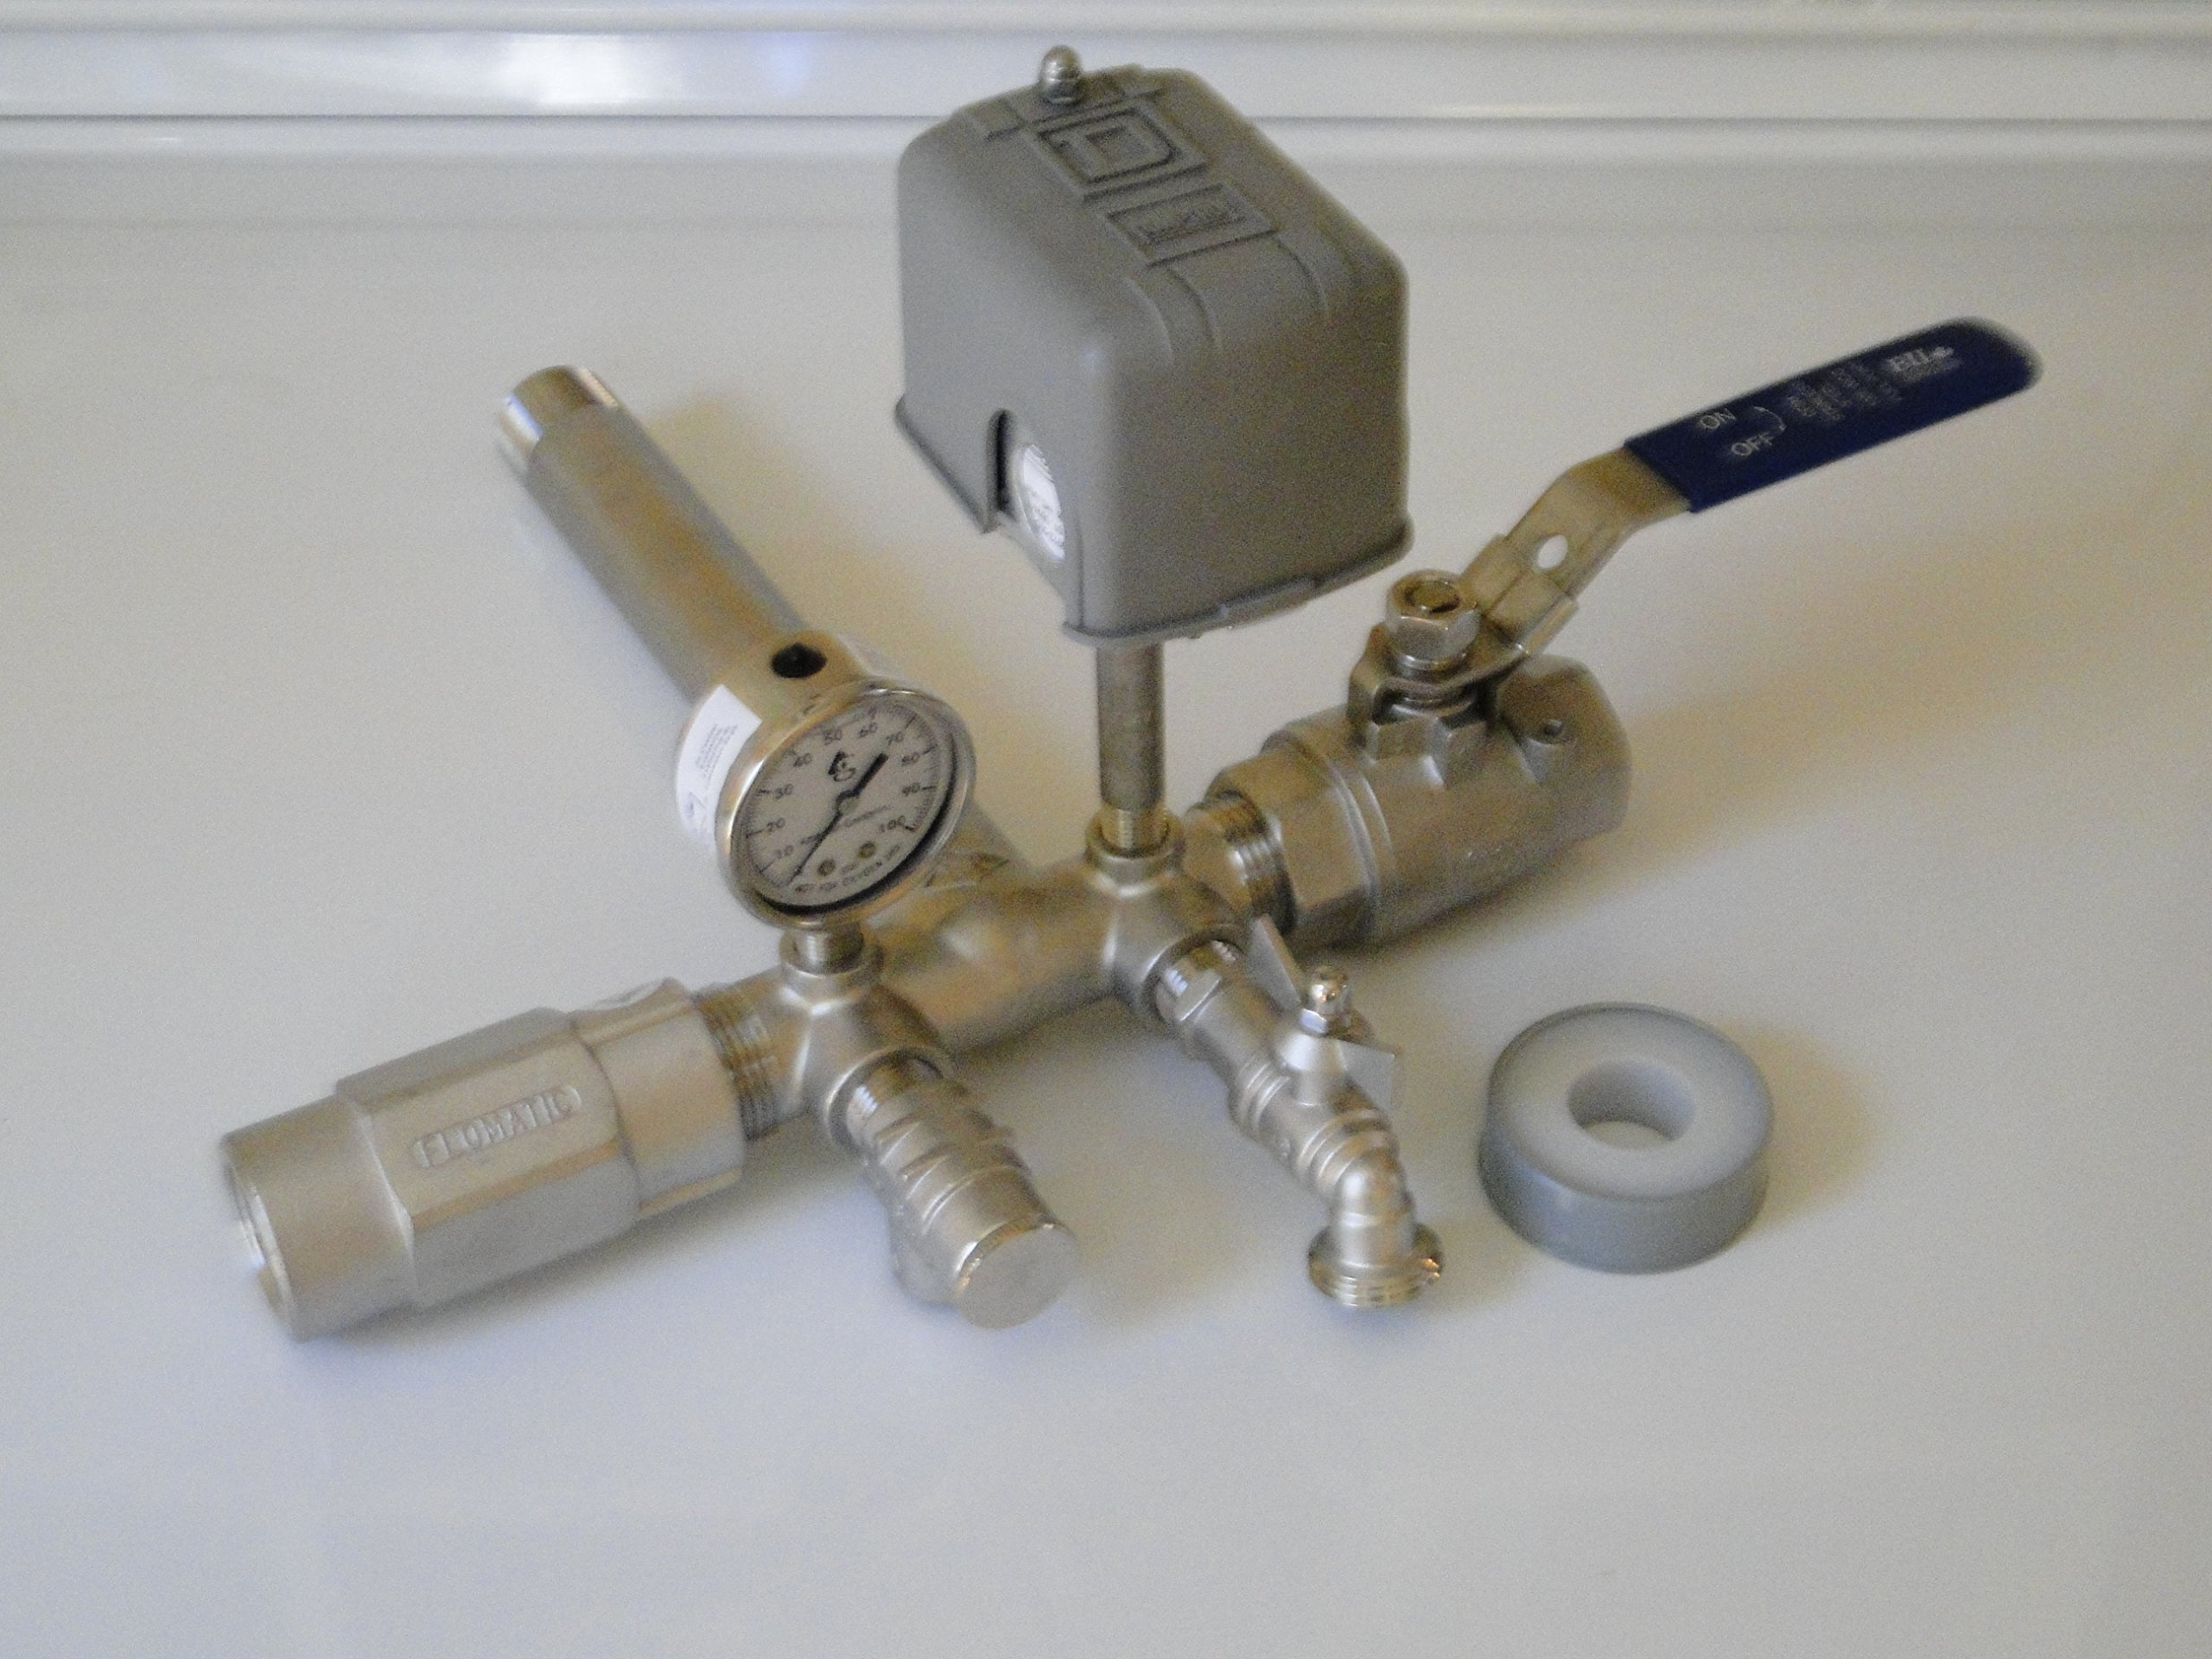 STAINLESS STEEL 1 x 11 Tank Tee Kit + VALVES Installation Water Well Pressure Tank with SQUARE D 40/60 FSG2 pressure switch